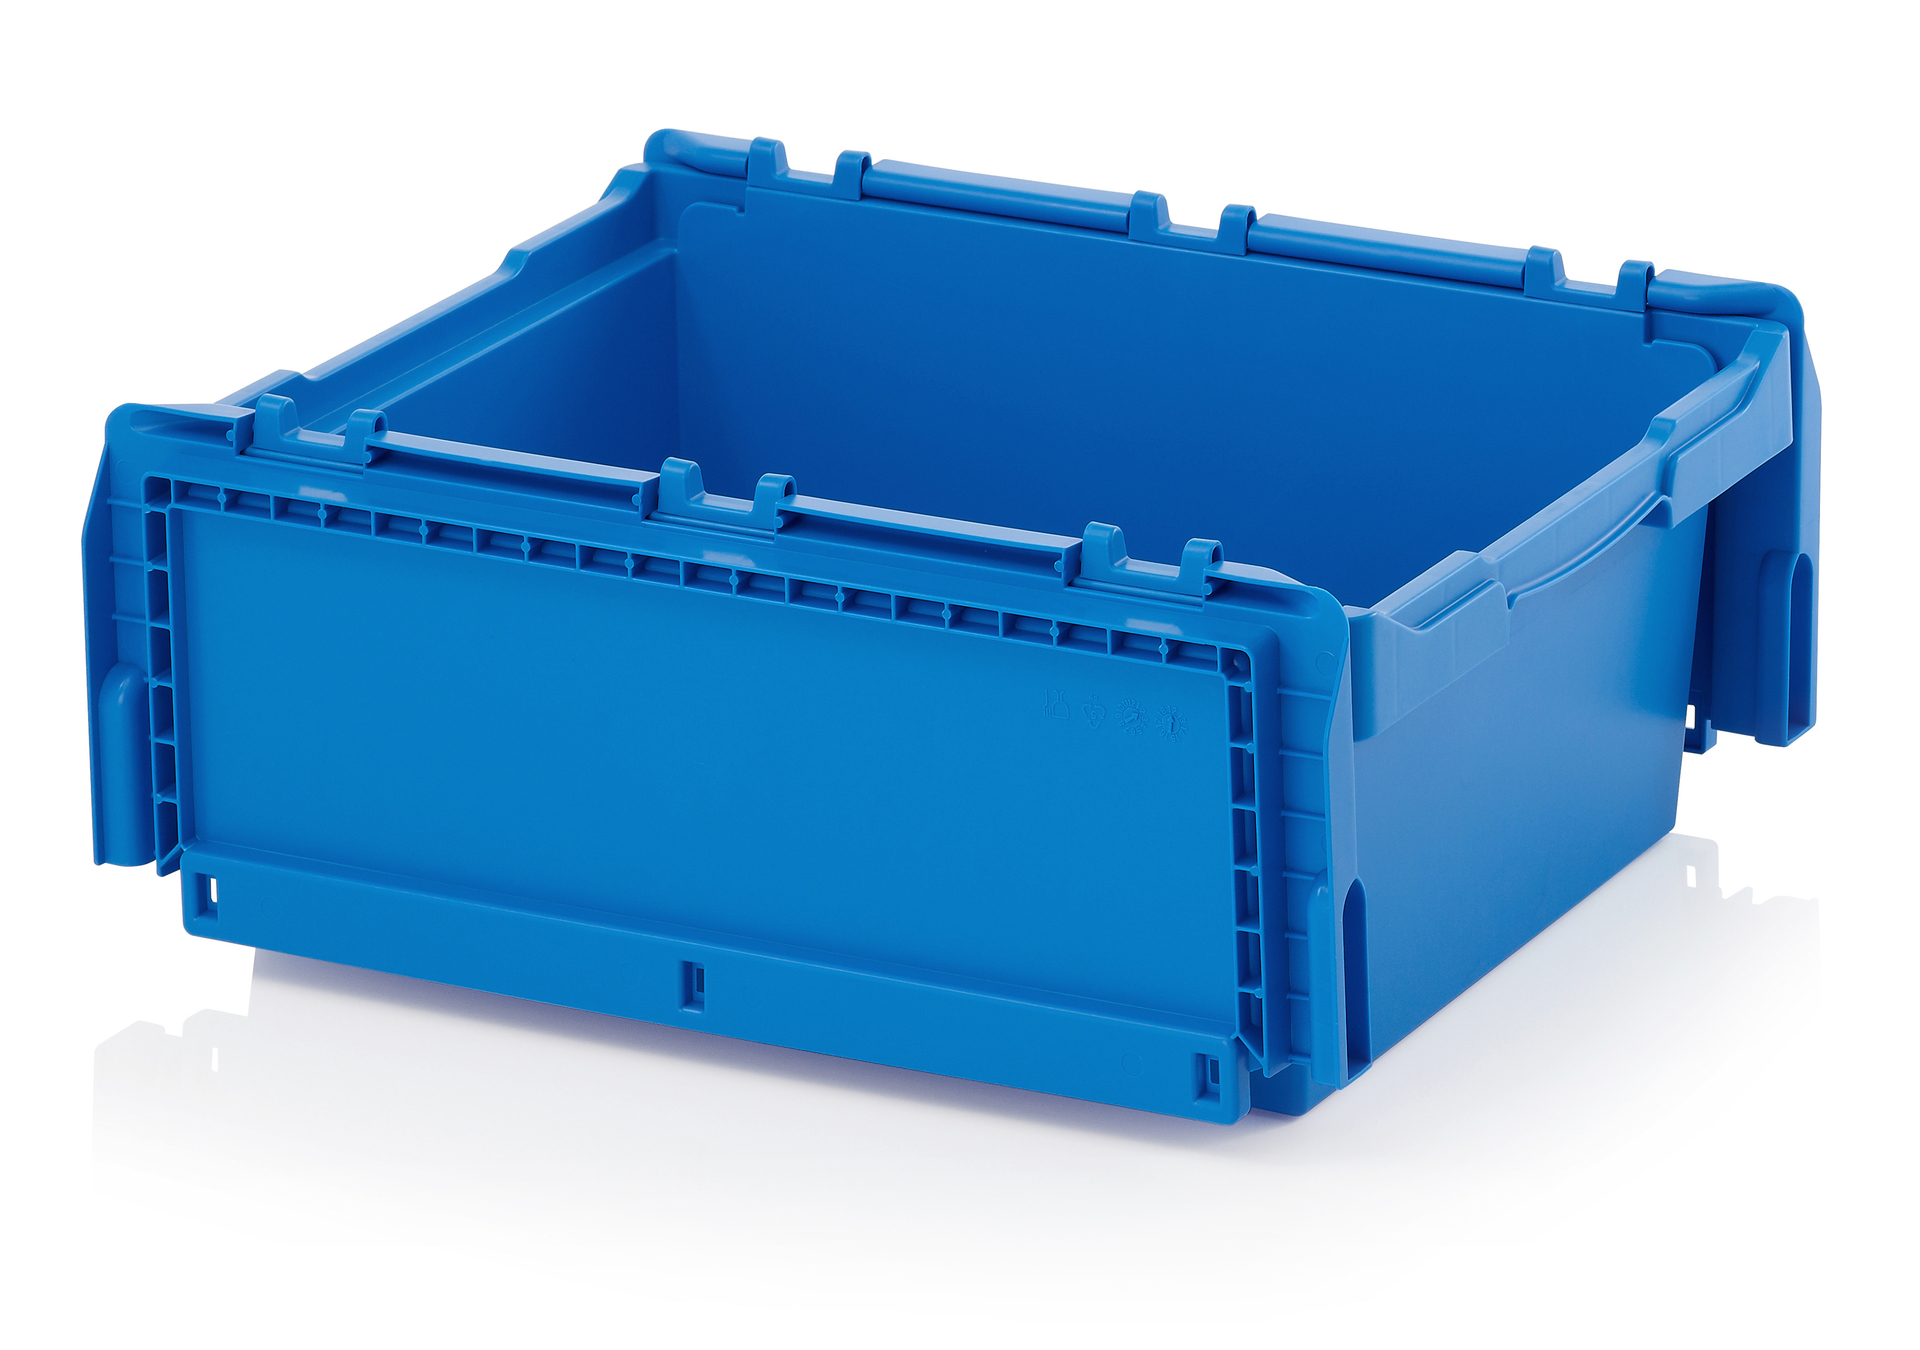 RC6220L_3-1 Reusable Containers - Plastic Mouldings Northern